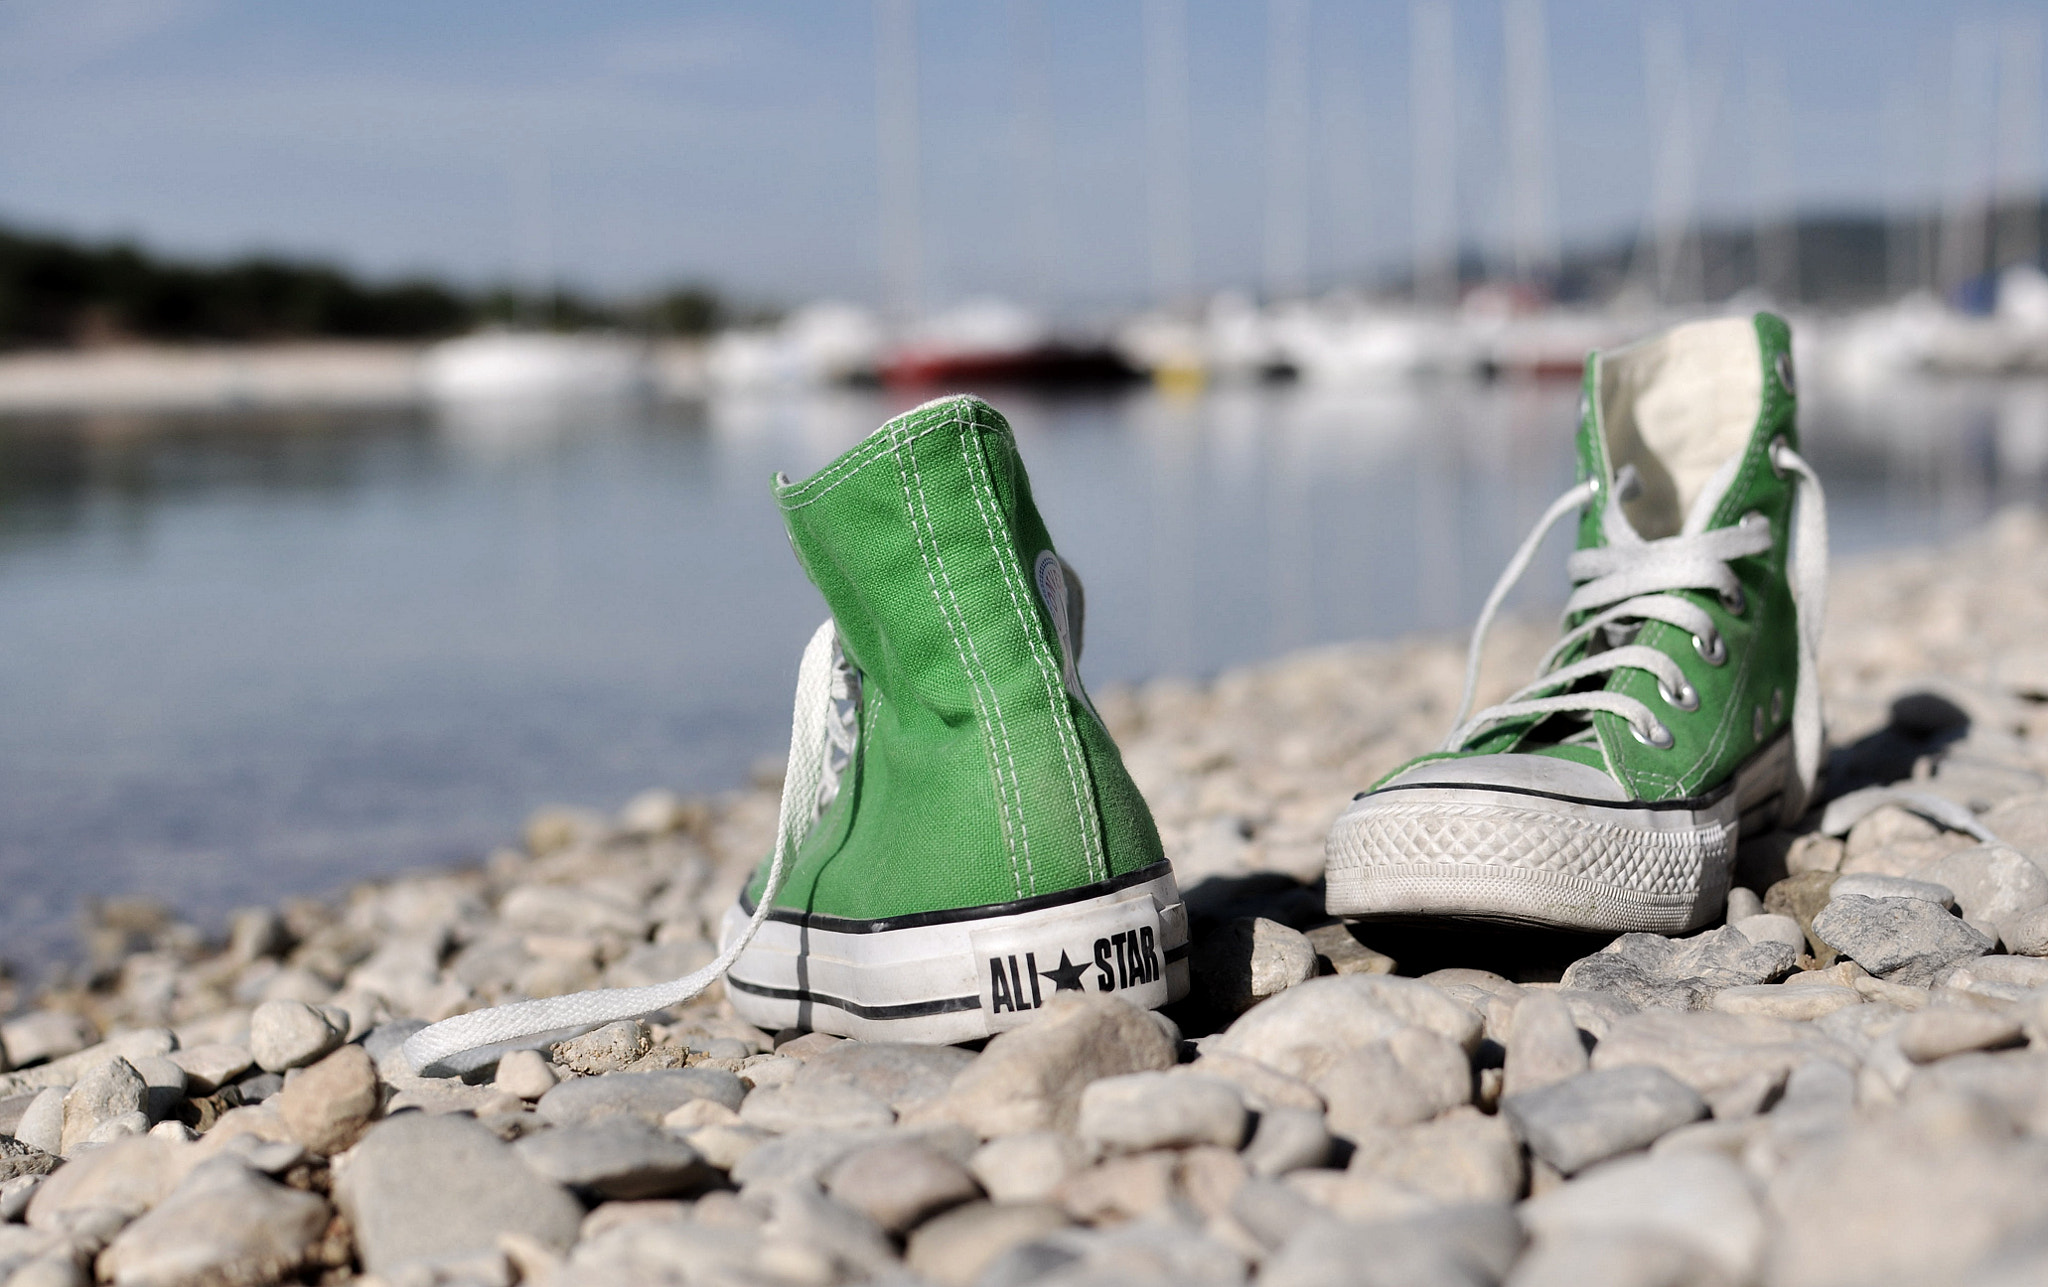 Photograph All Star by Alyse on 500px